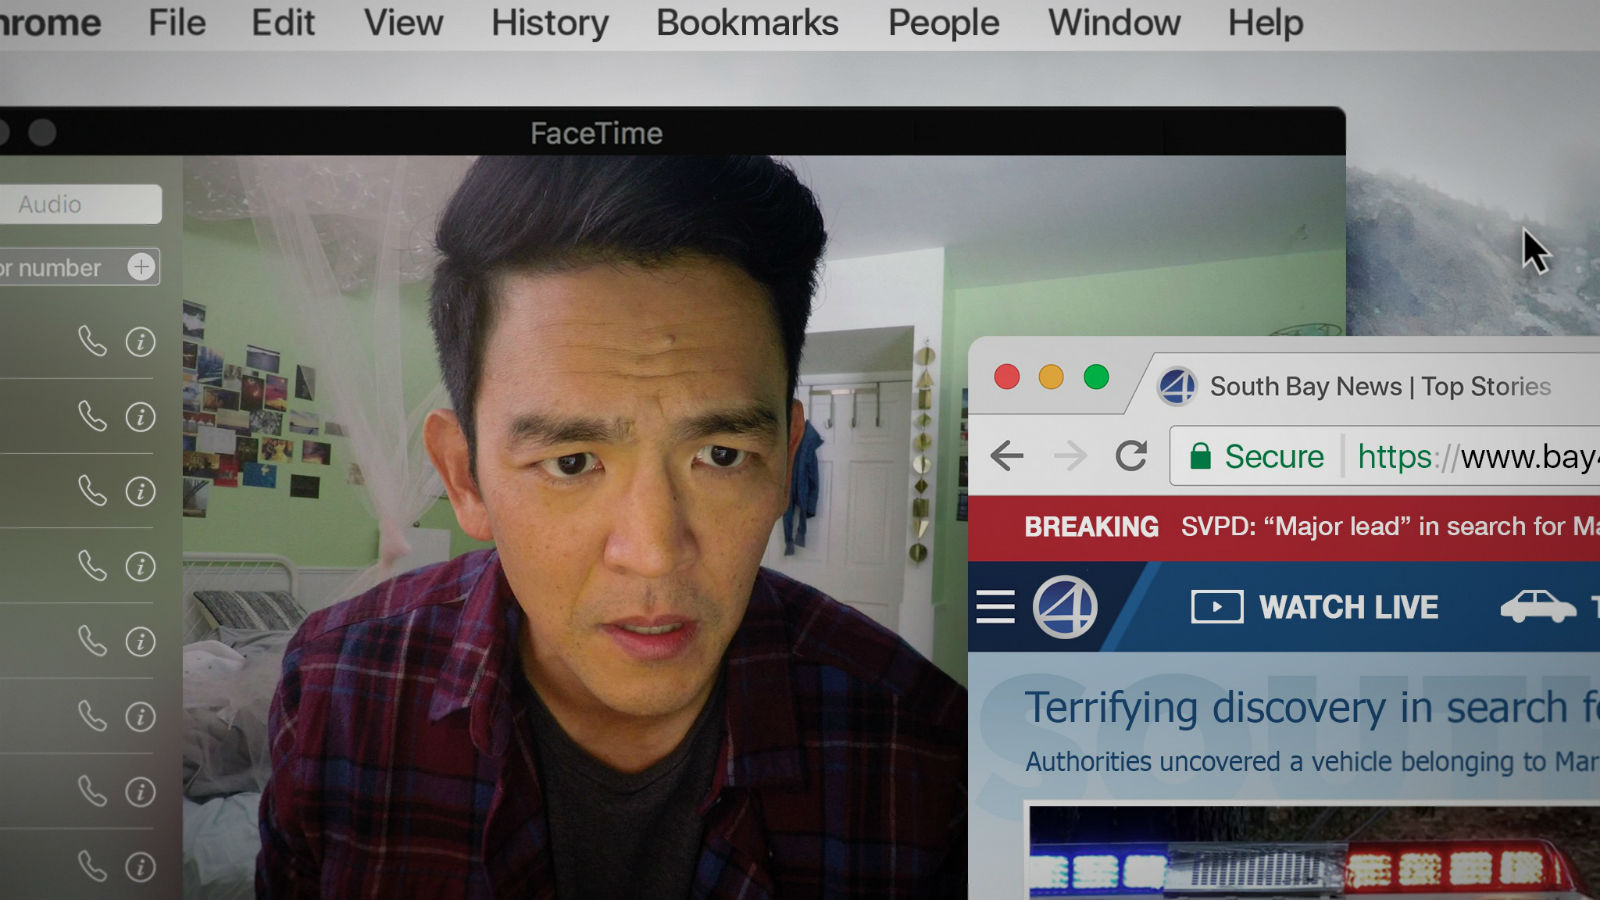 John Cho in Searching...